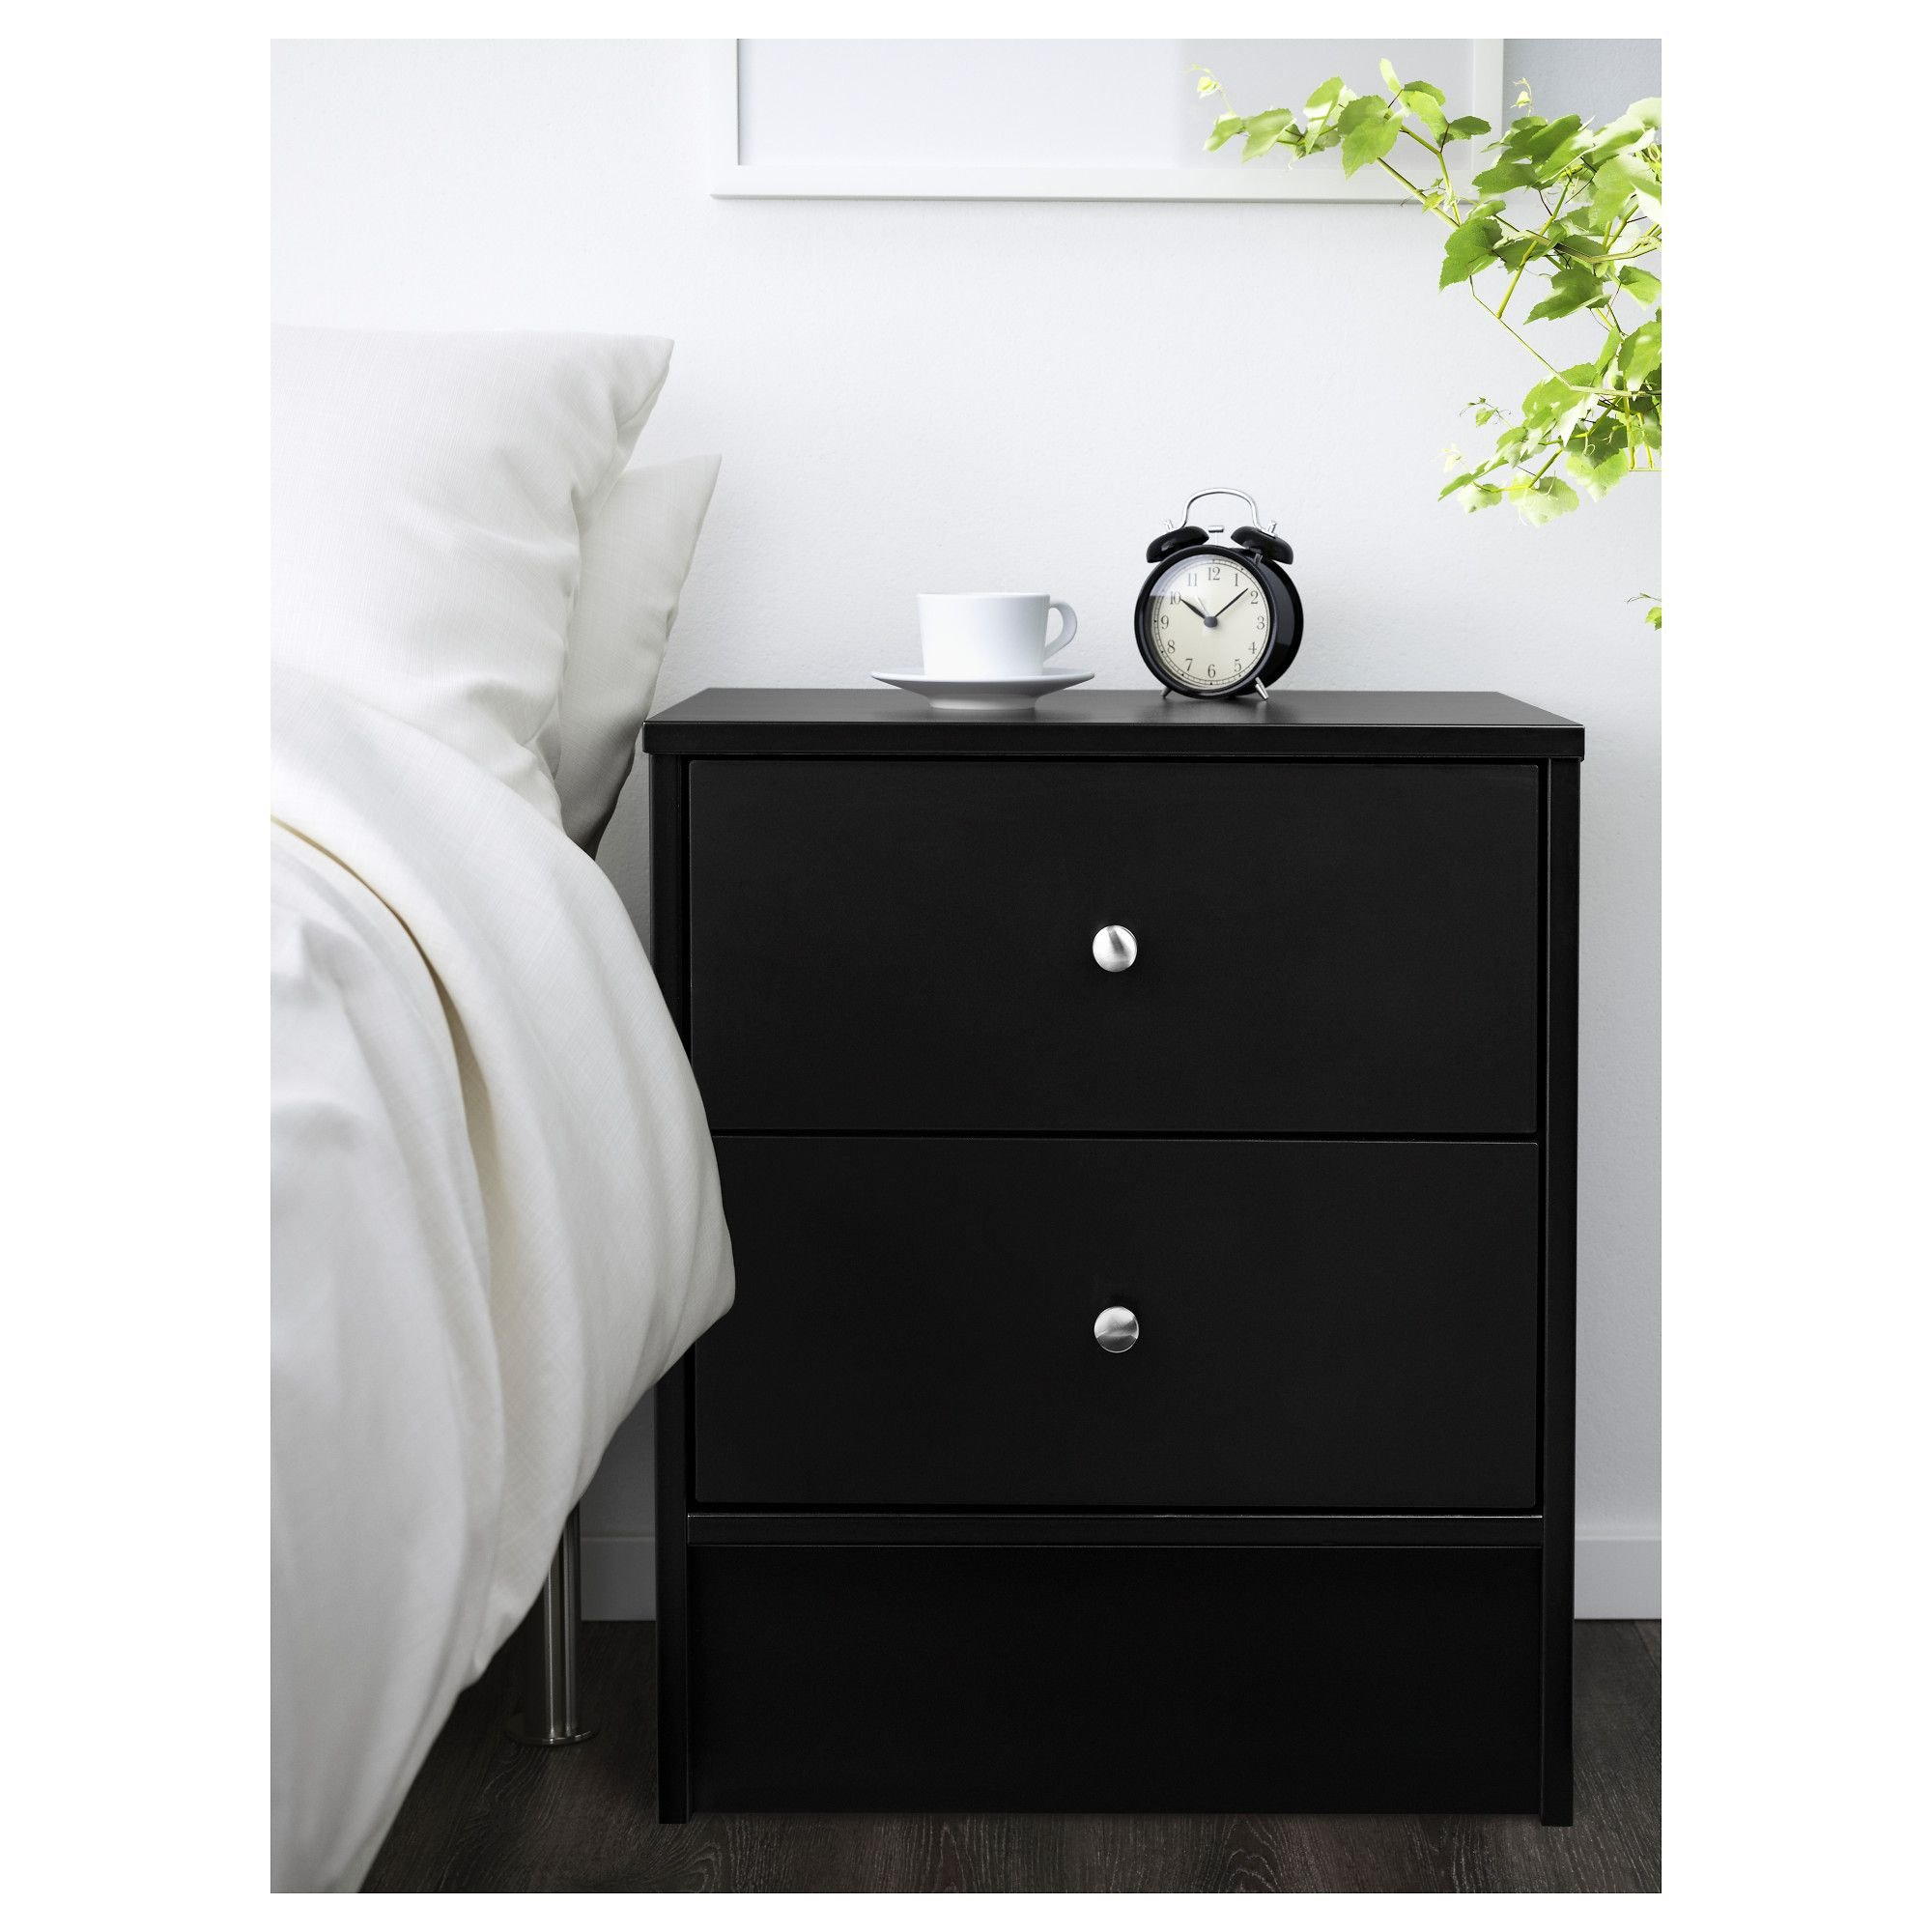 Ikea Bedroom Furniture Set Lovely Furniture and Home Furnishings